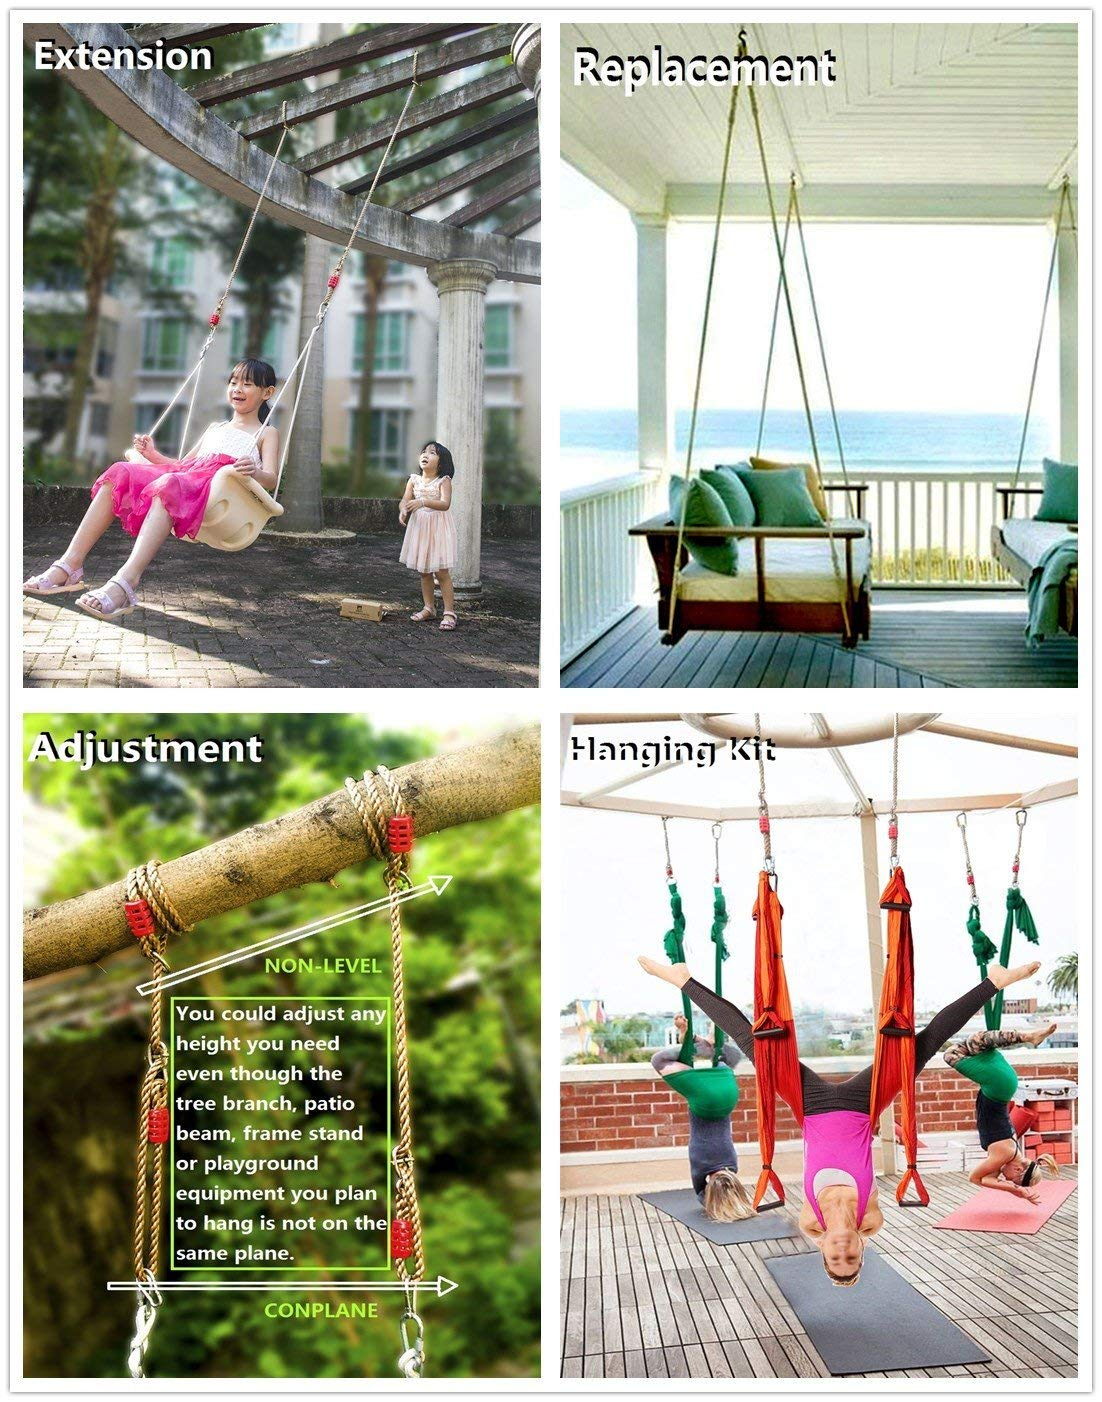 Artigifts Hammock Chair Tree Swing Nylon Rope Hanging Kit For Adjustable Extendable Replaceable 6ft 600lb Capacity 1 Carabiner Included 1 Pack Industrial Scientific Cjp Org In